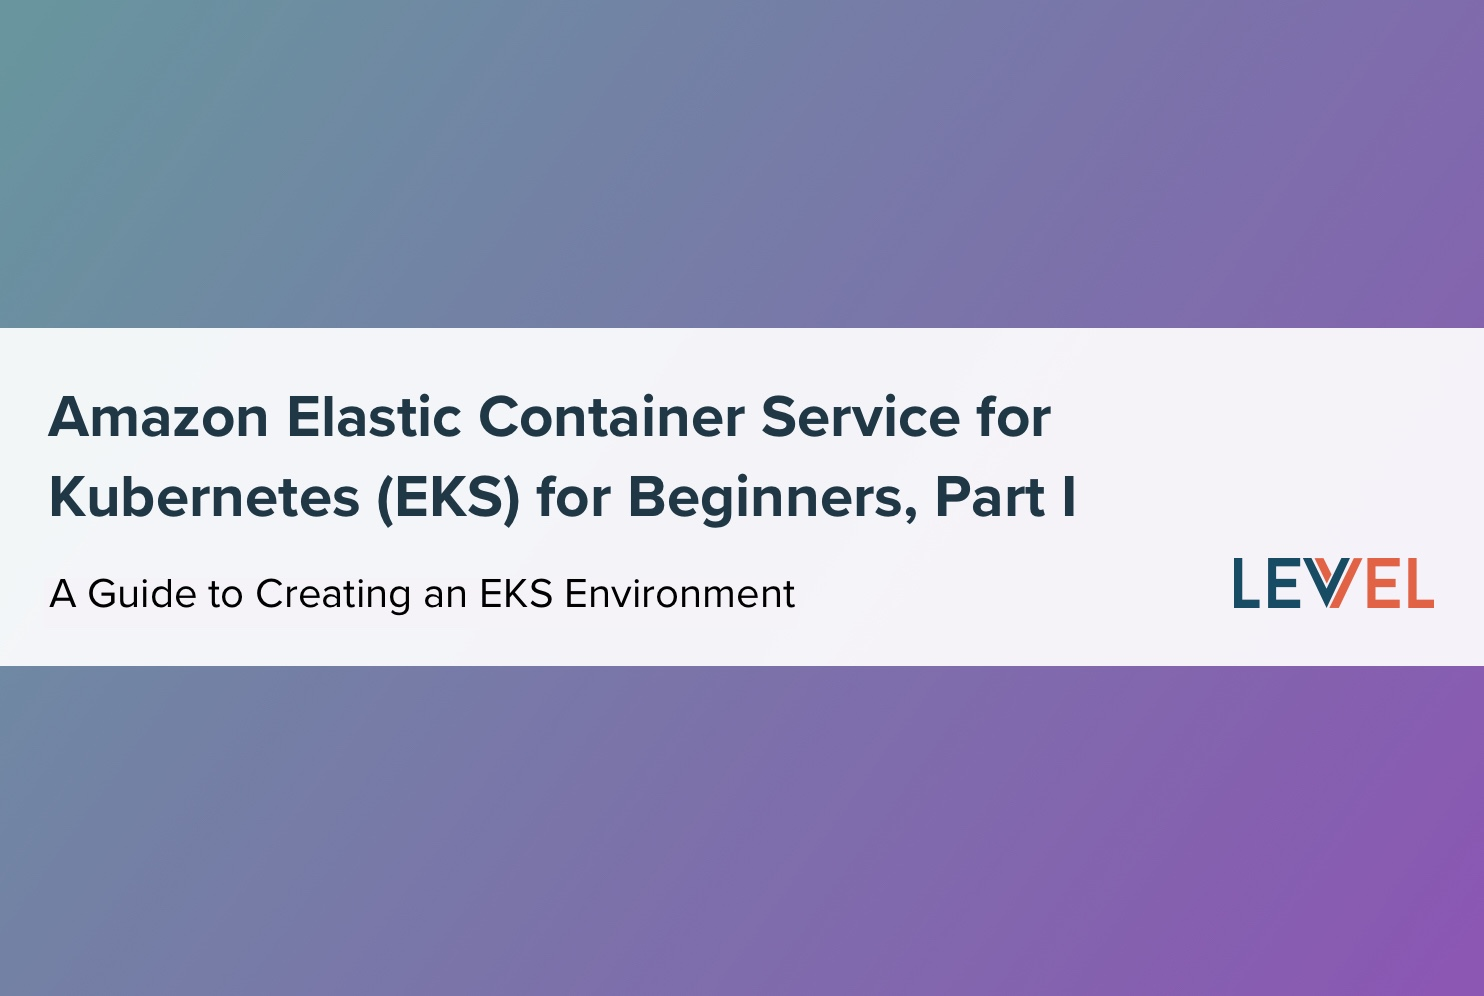 Amazon Elastic Container Service (EKS) for Beginners, Part 1